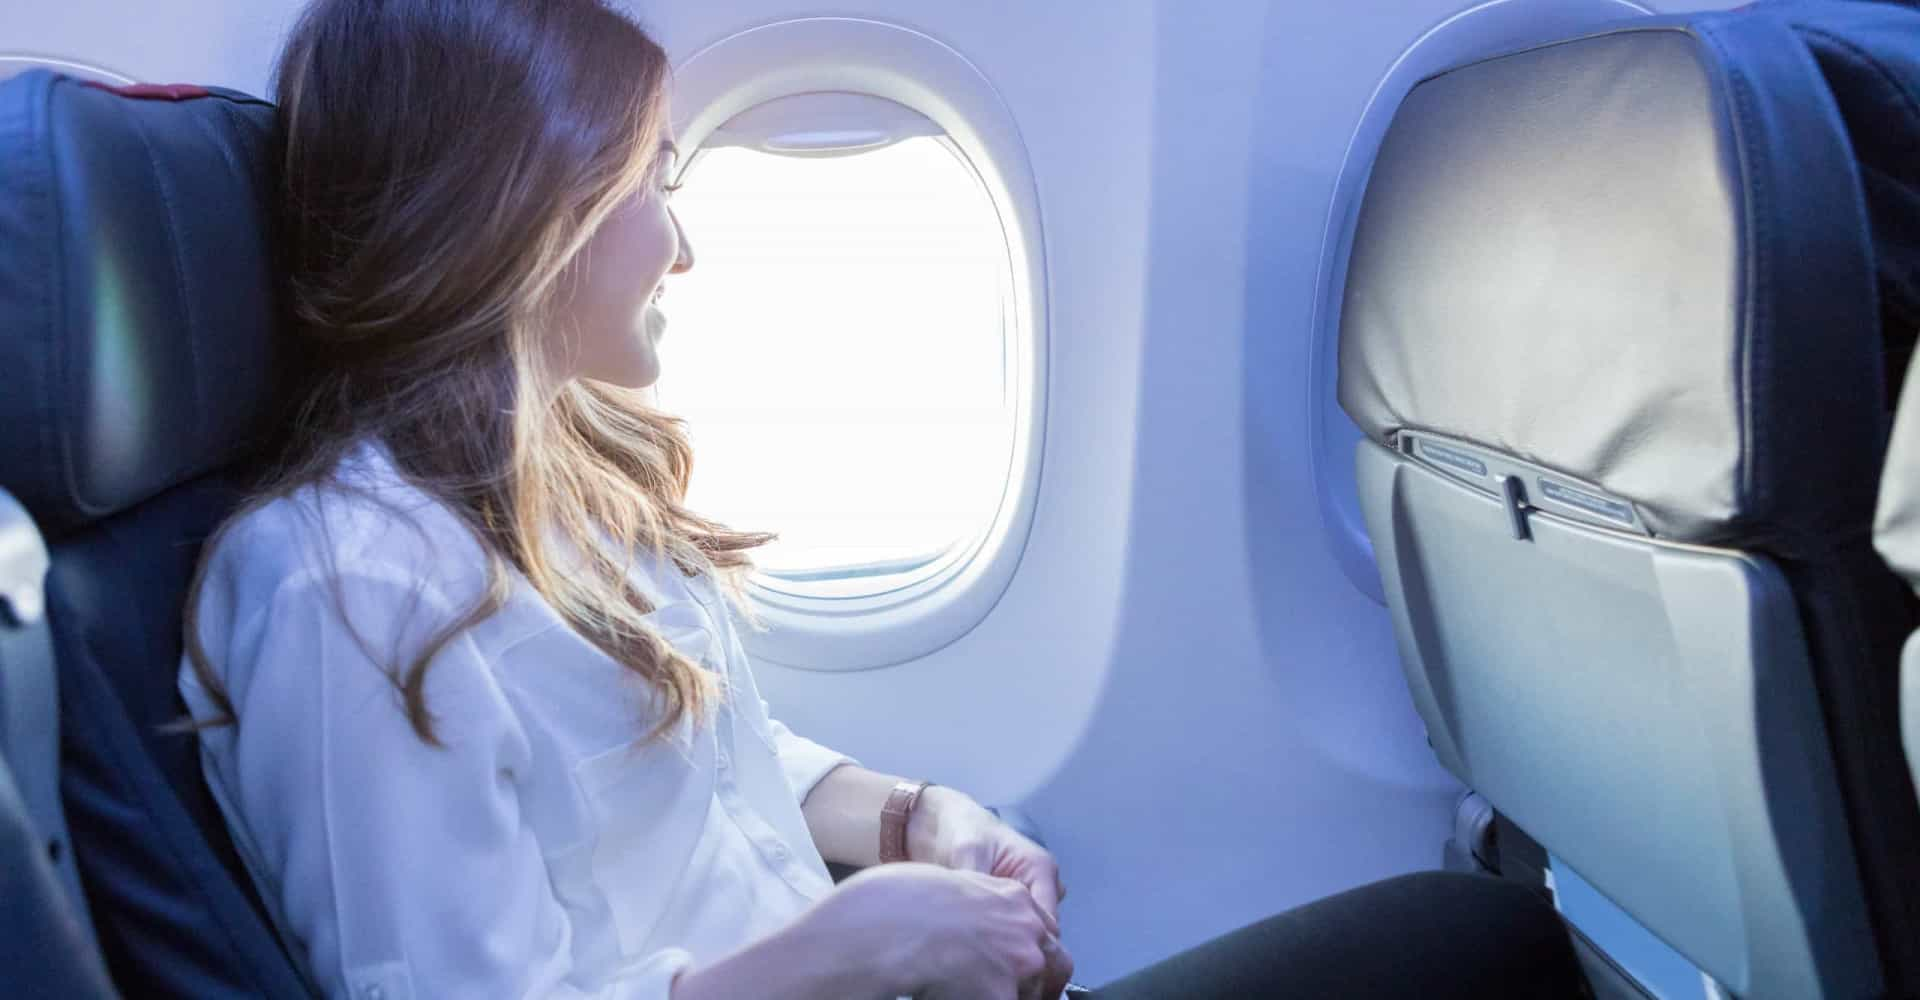 Window or aisle seat: which is better?